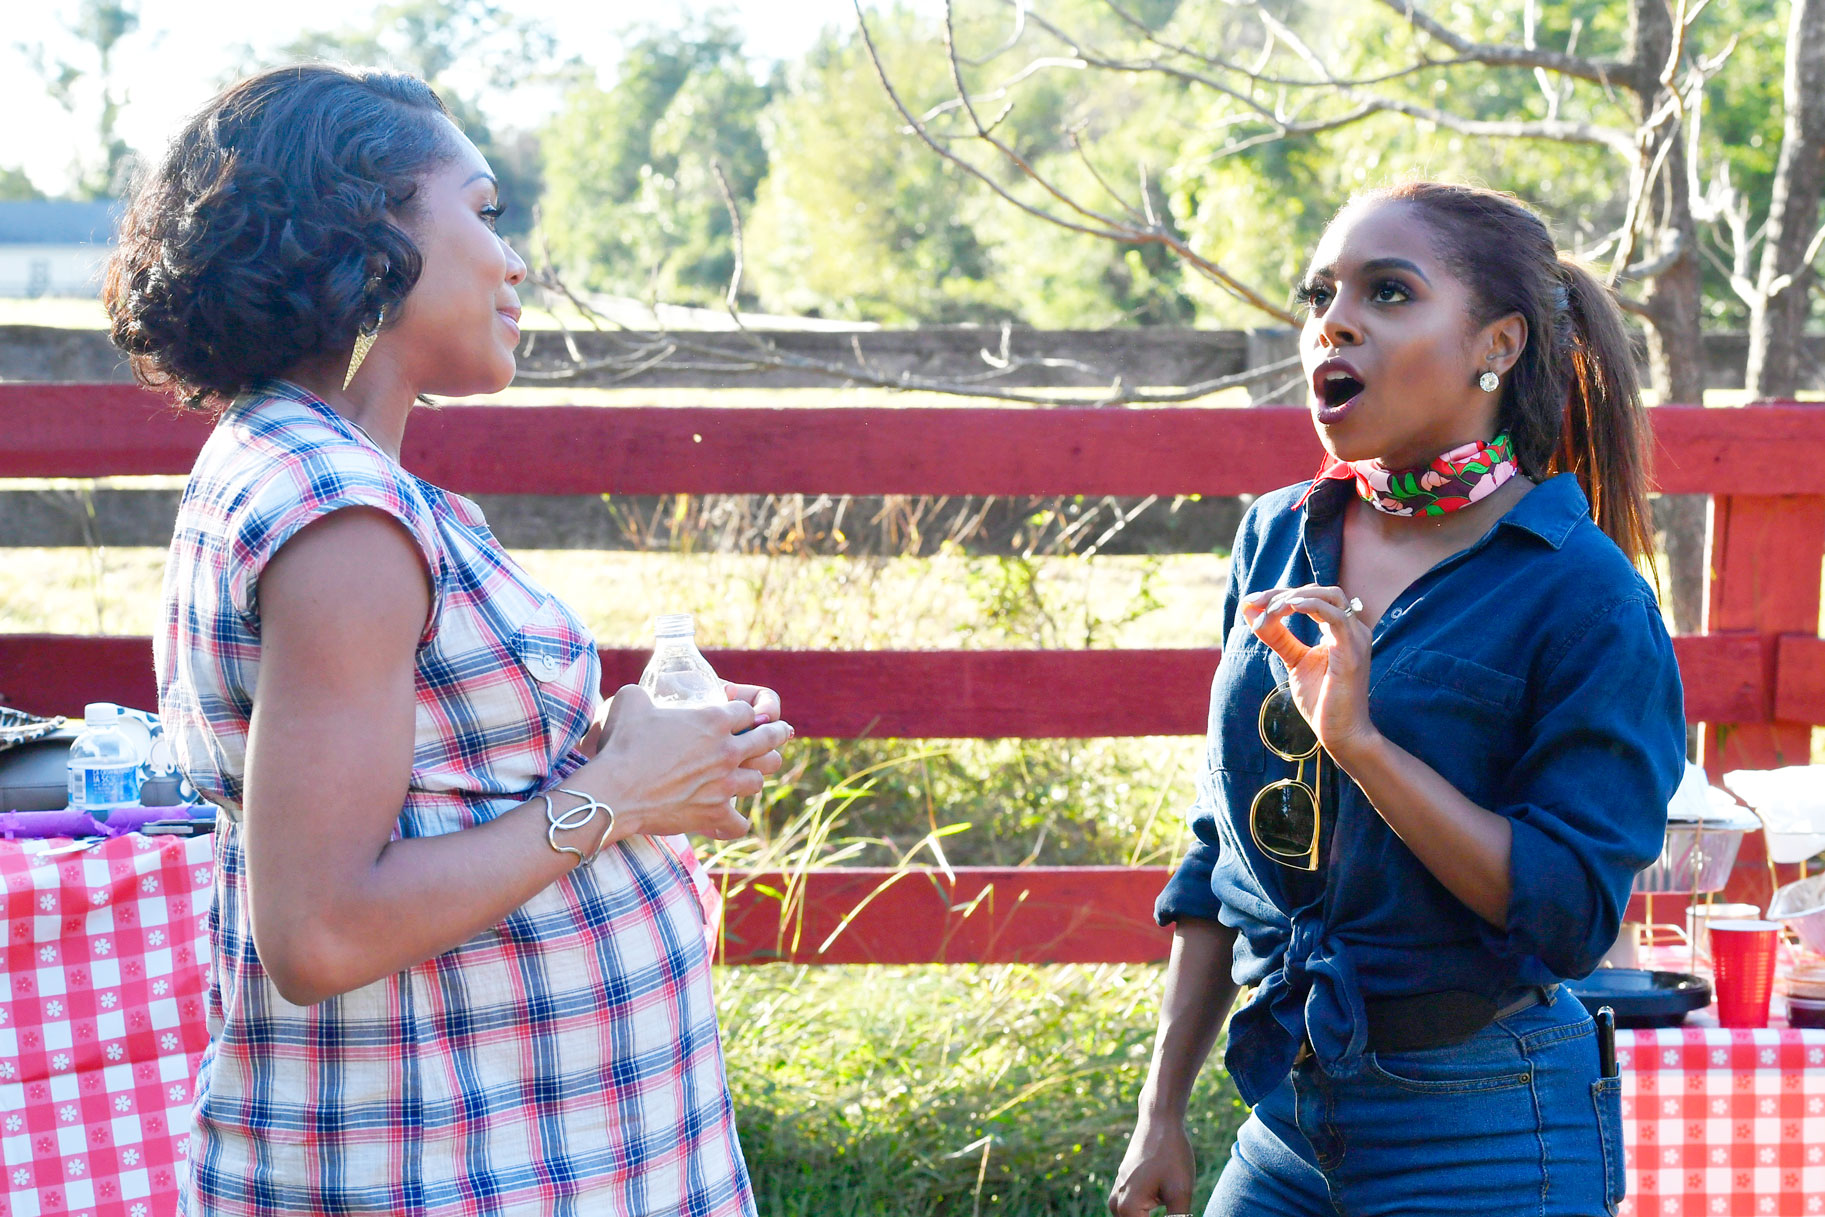 Monique Samuels and Candiace Dillard Basset in The Real Housewives of Potomac Season 4